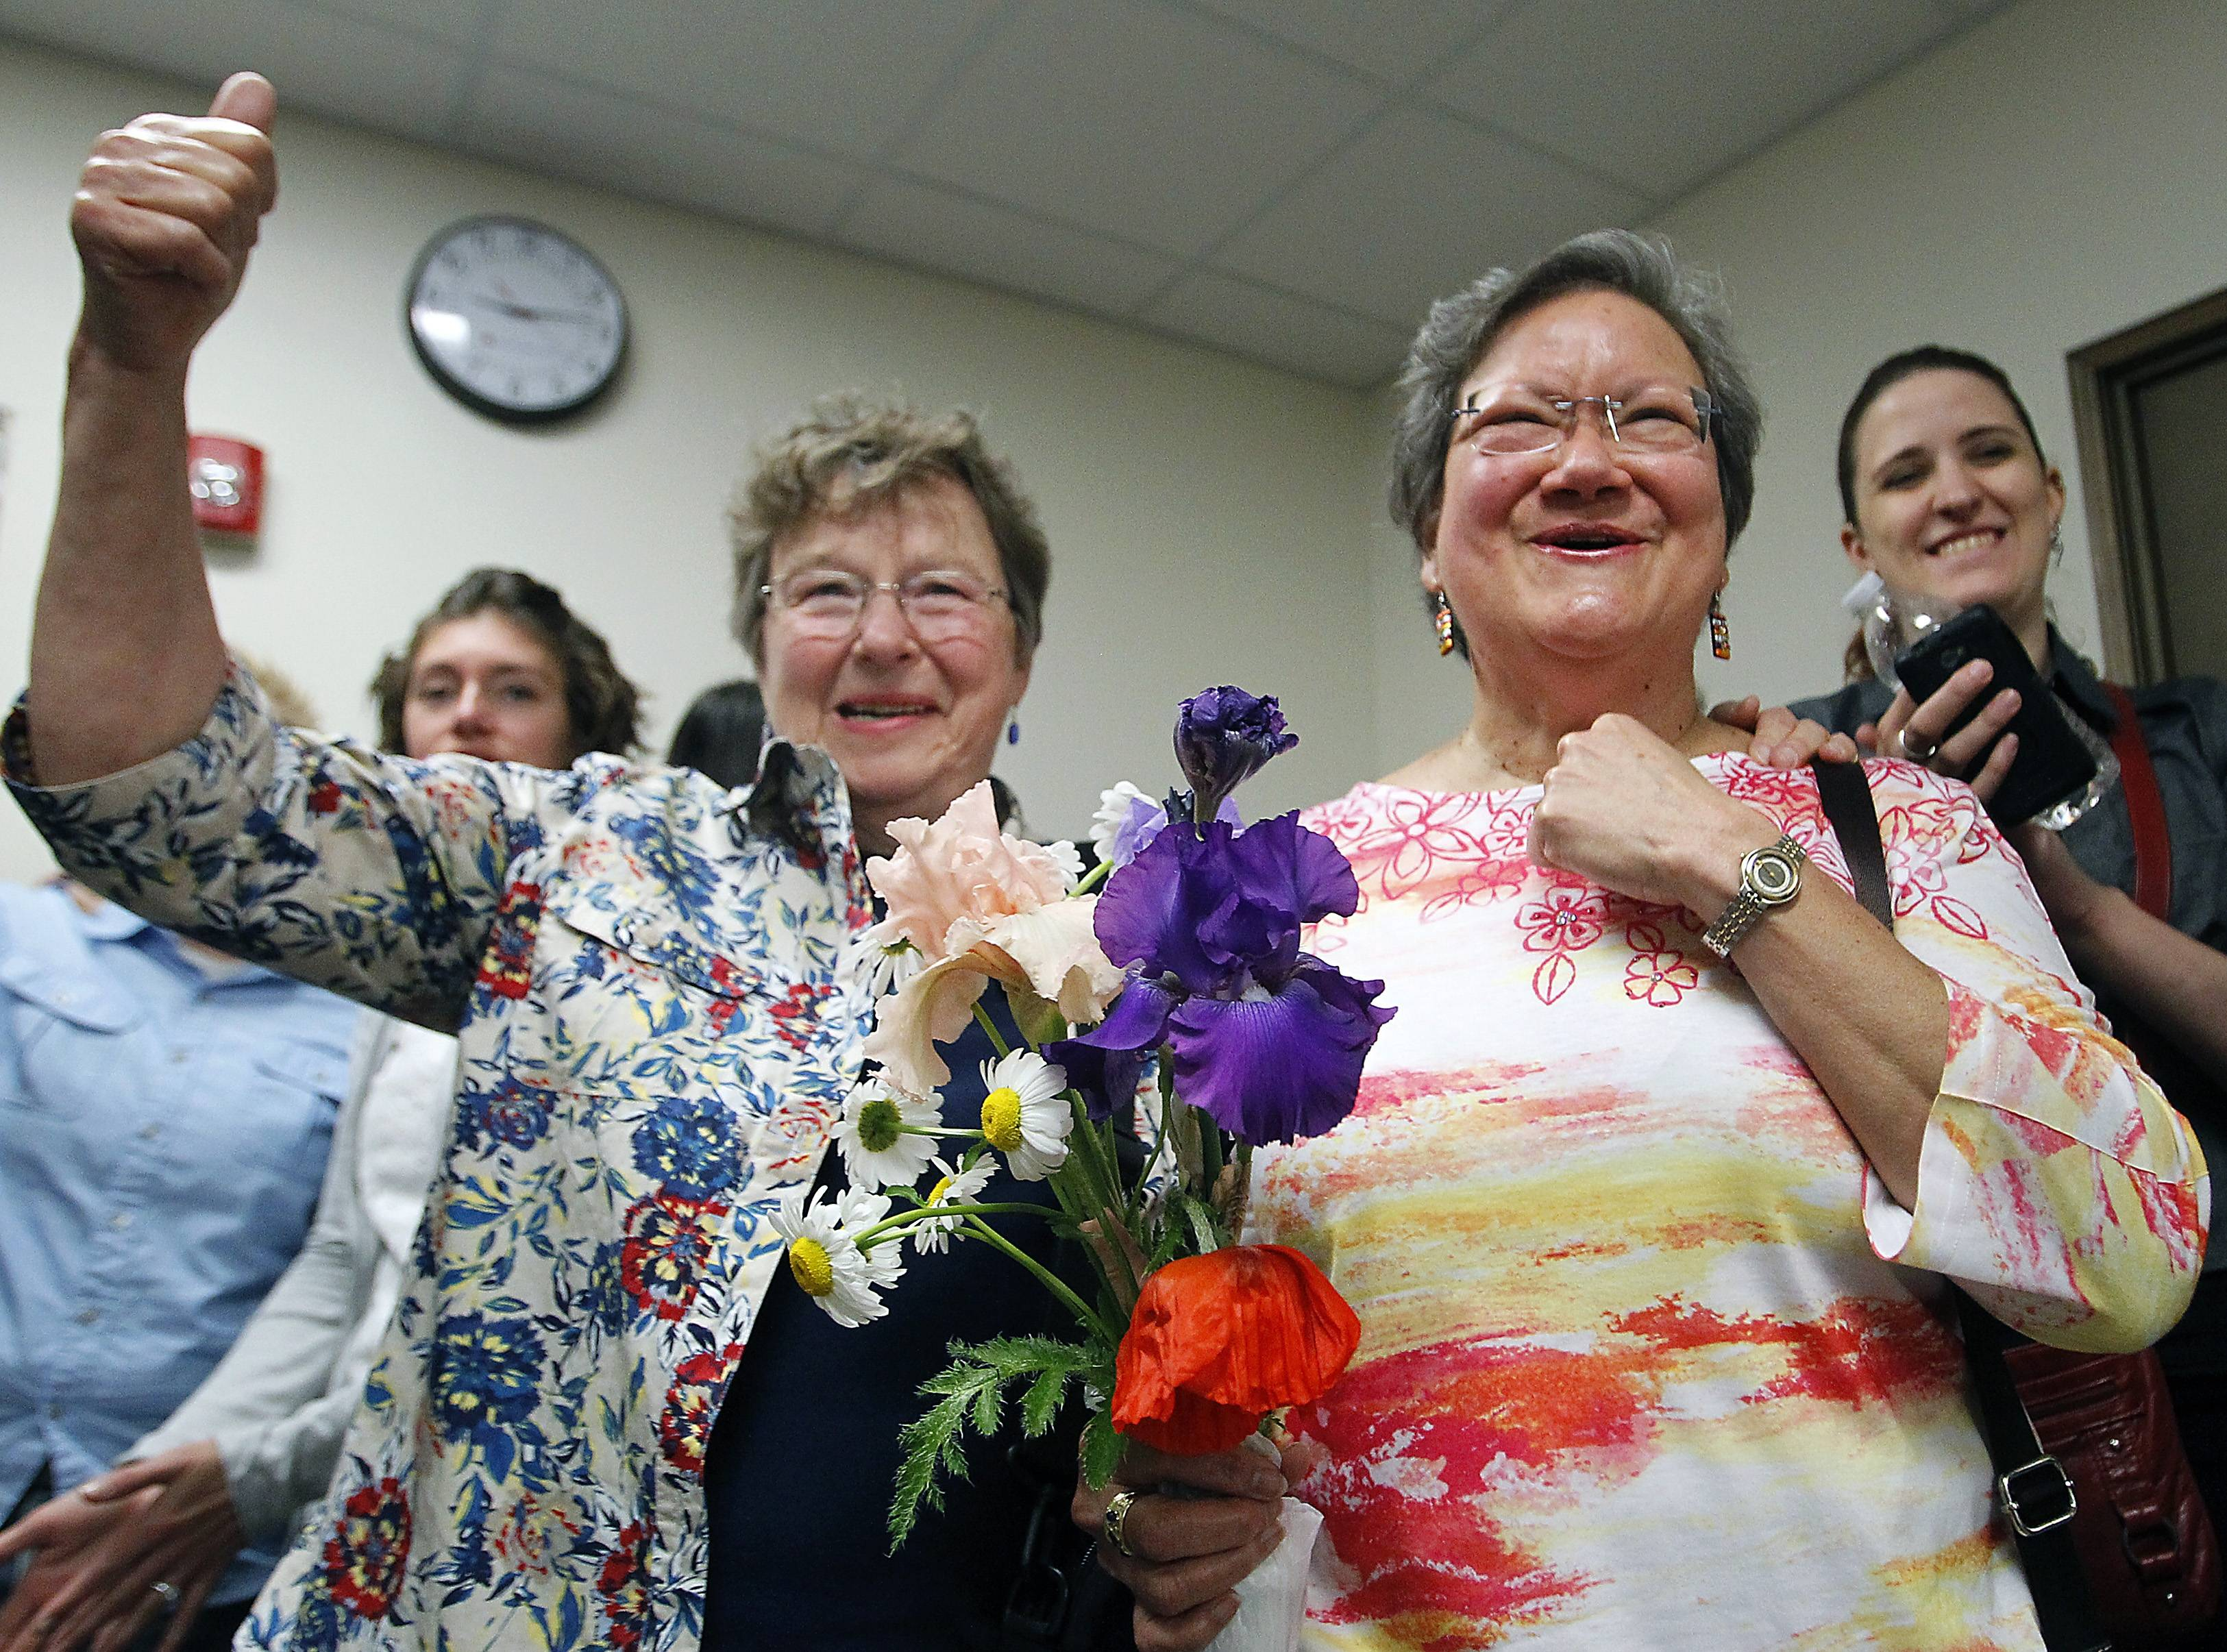 Miriam Douglass, left, and Ligia Rivera react to Monday's announcement that marriage licenses would be granted, subject to a five-day waiting period, in Outagamie County, Wis. The two were given the first same-sex marriage license in the county.